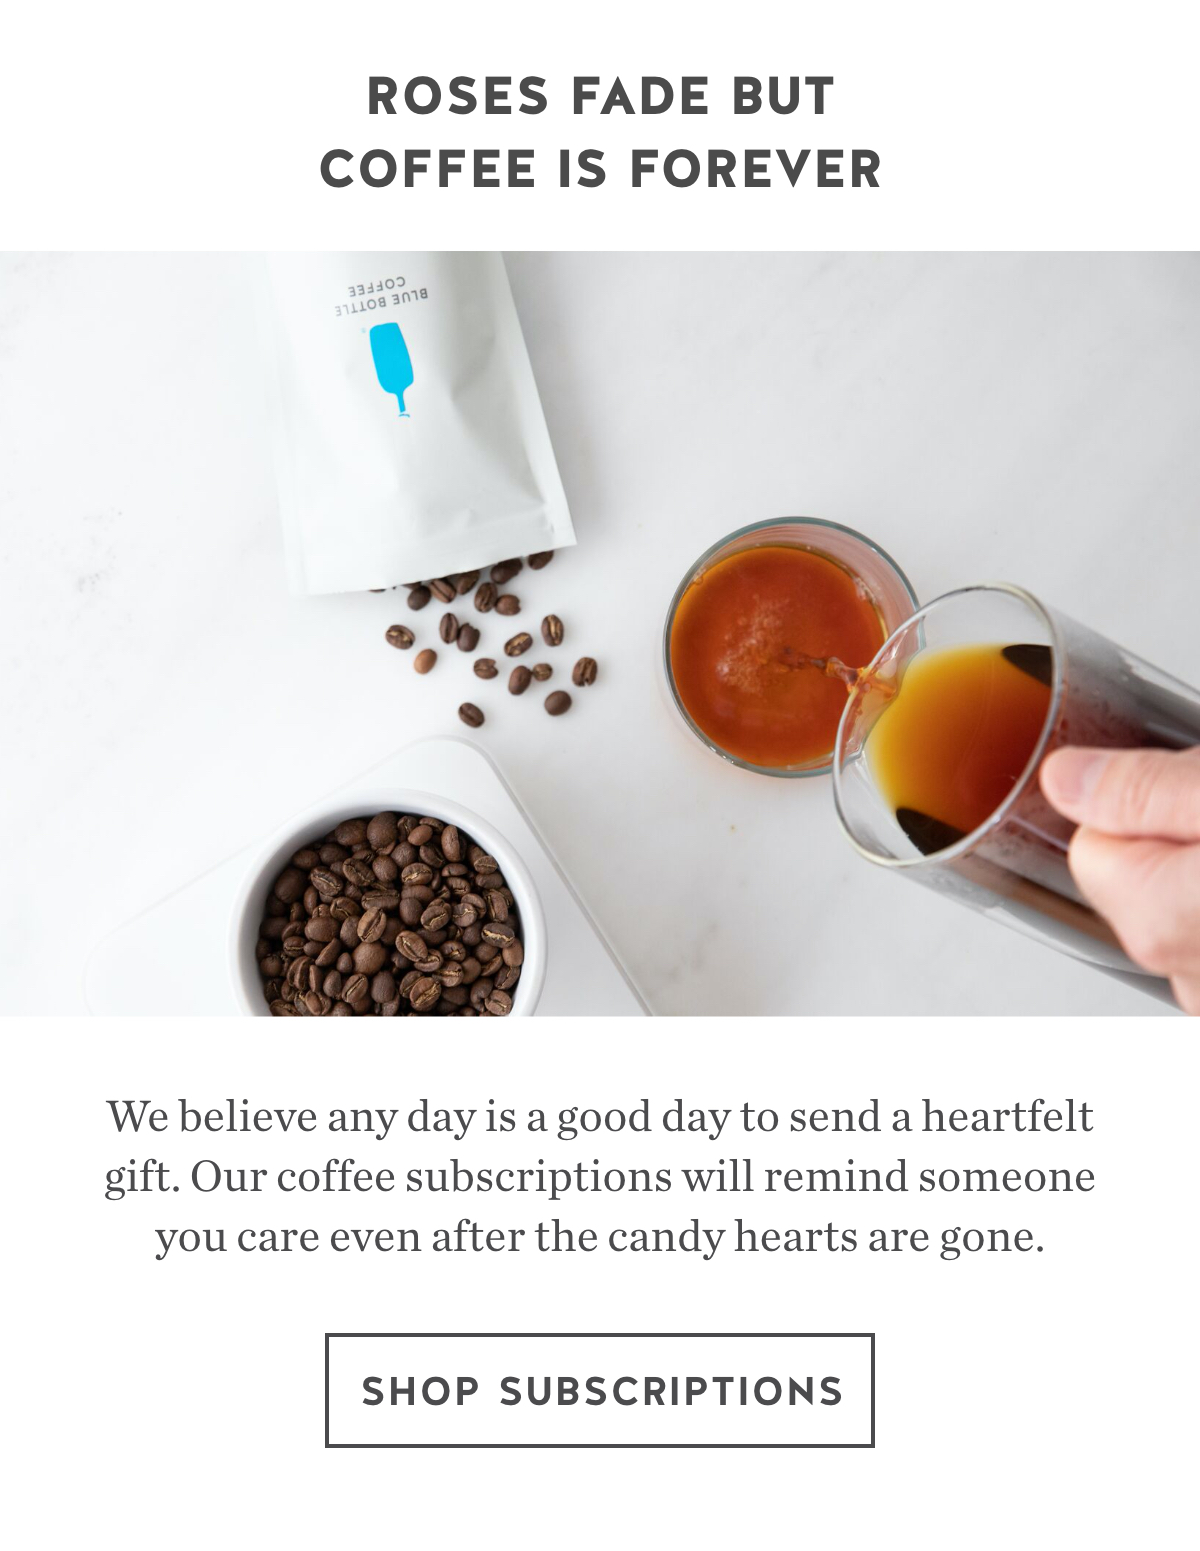 Roses Fade. But Coffee Is Forever. We believe any day is a good day to send a heartfelt gift. Our coffee subscriptions will remind someone you care even after the candy hearts are gone. Shop subscriptions.